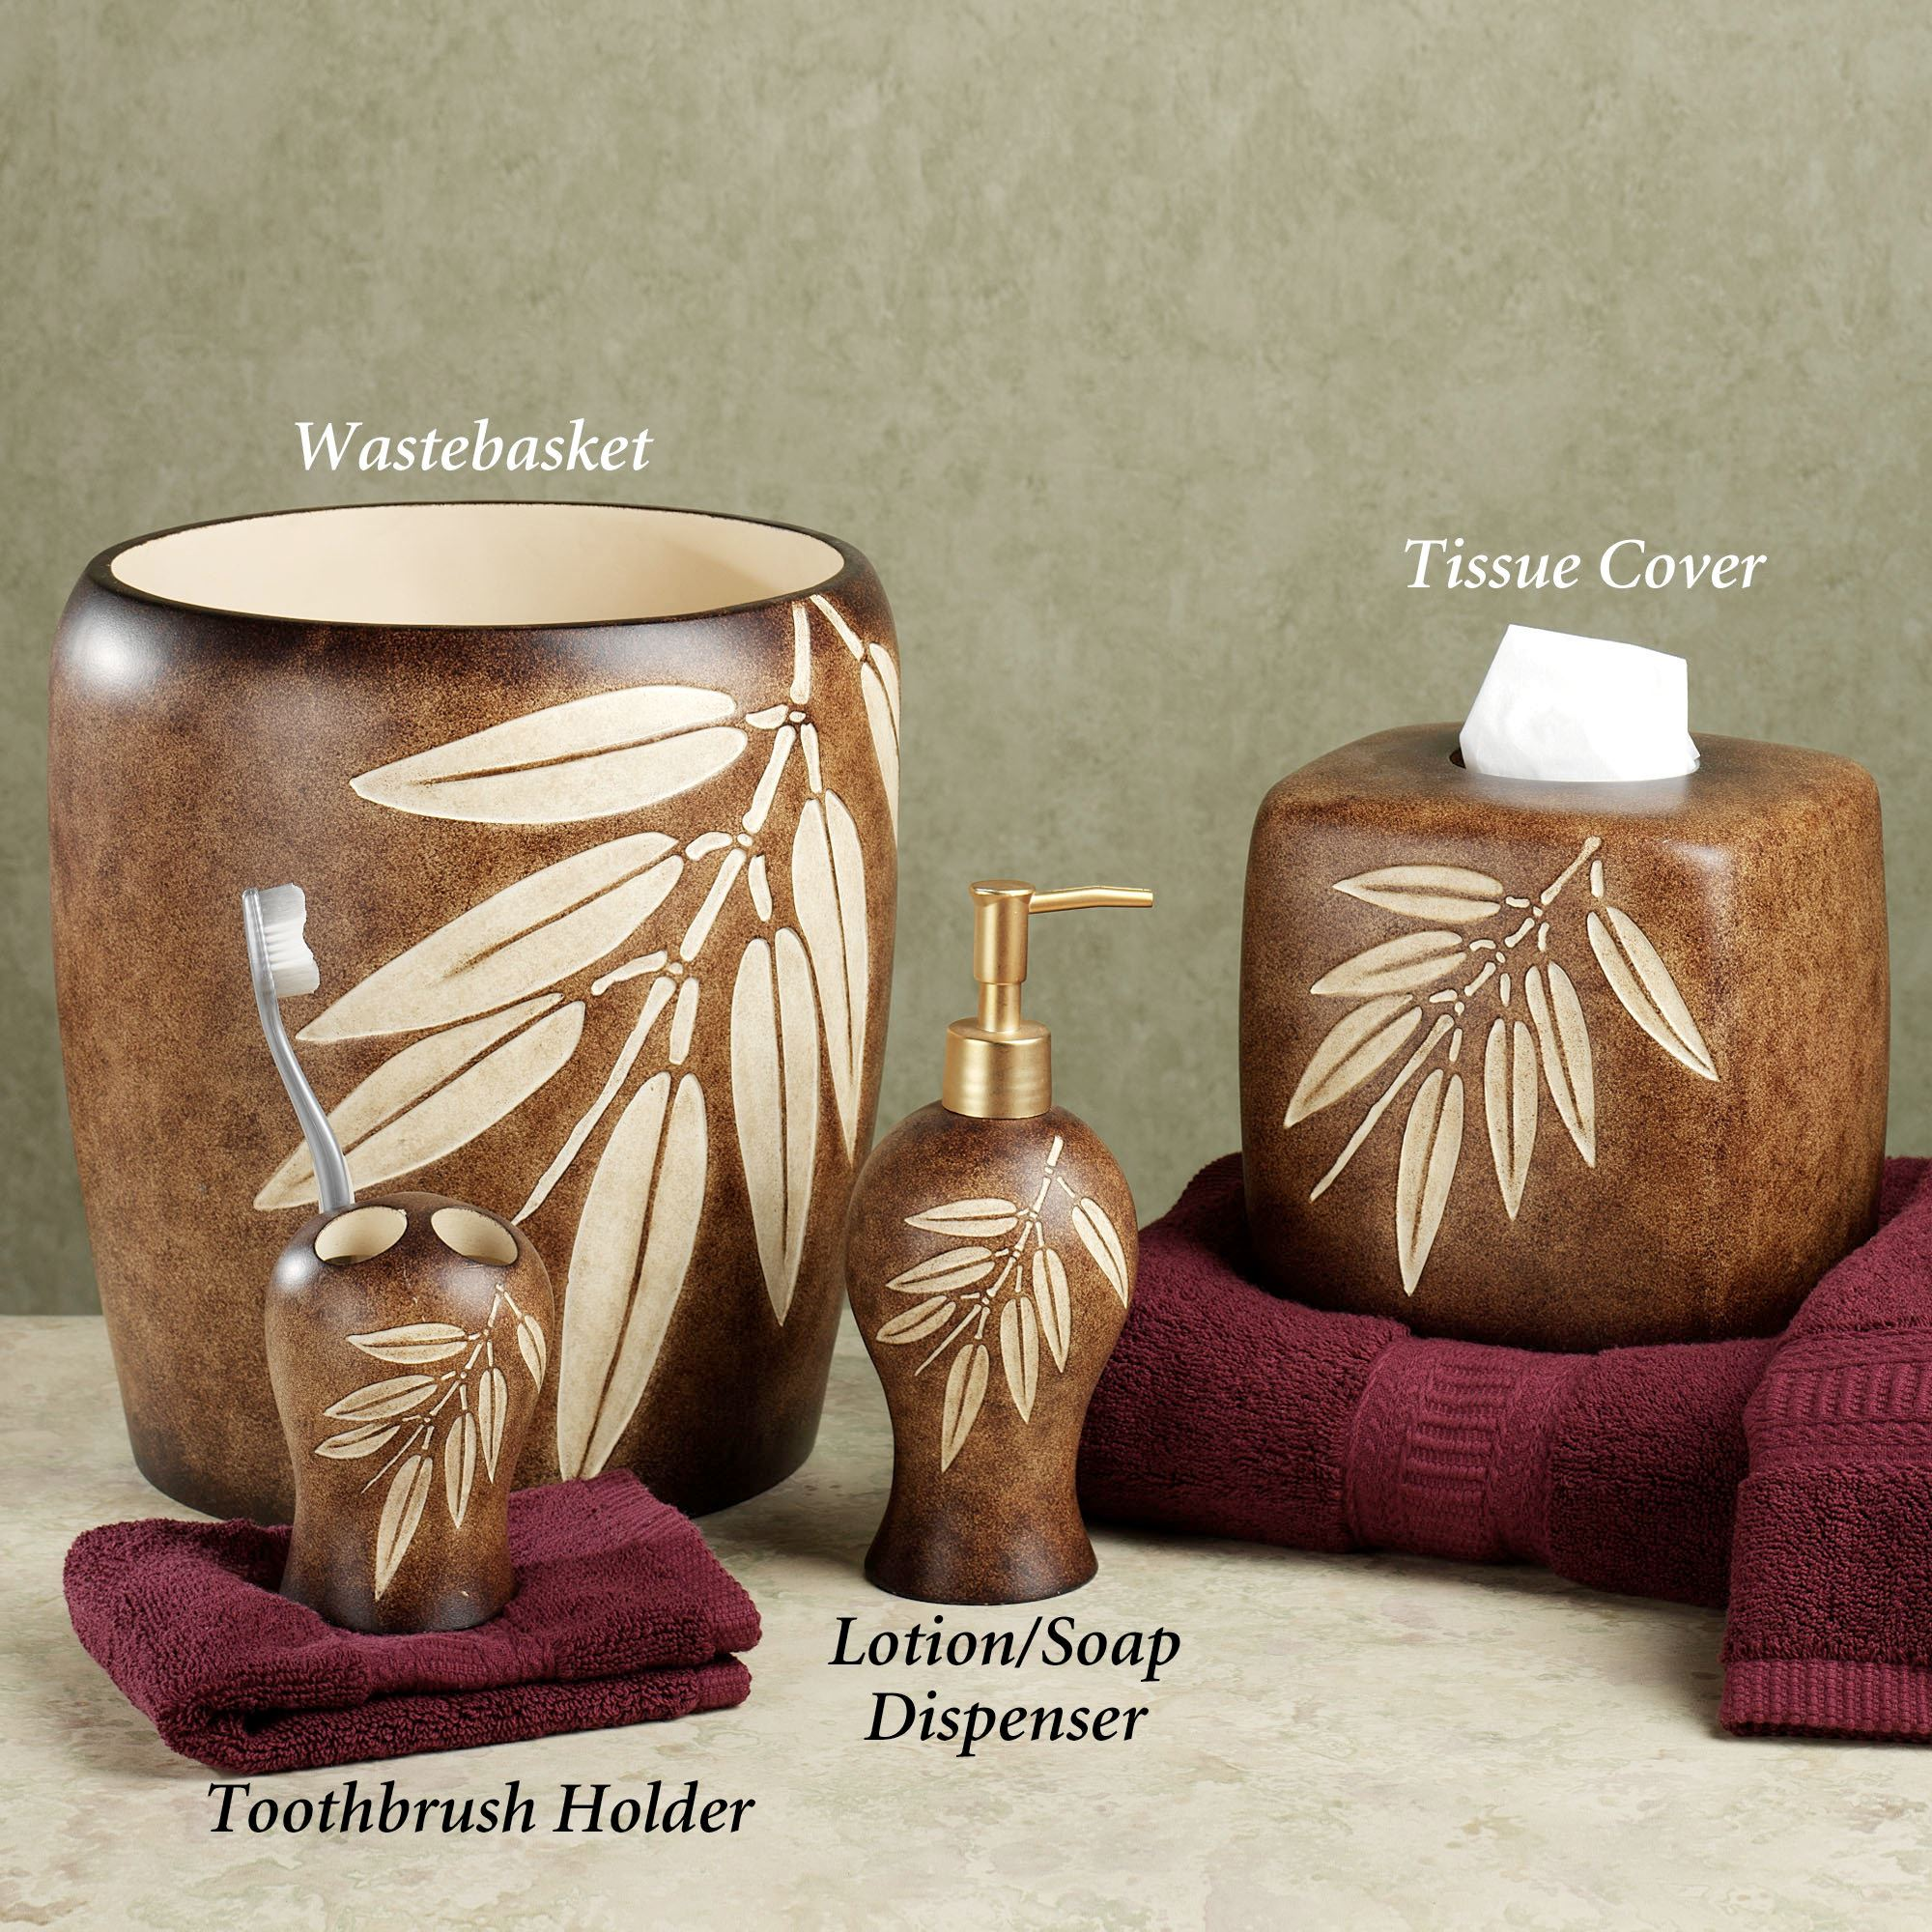 Superieur Bamboo Leaf Bath Accessories. Bamboo Leaf Lotion Soap Dispenser. Touch To  Zoom